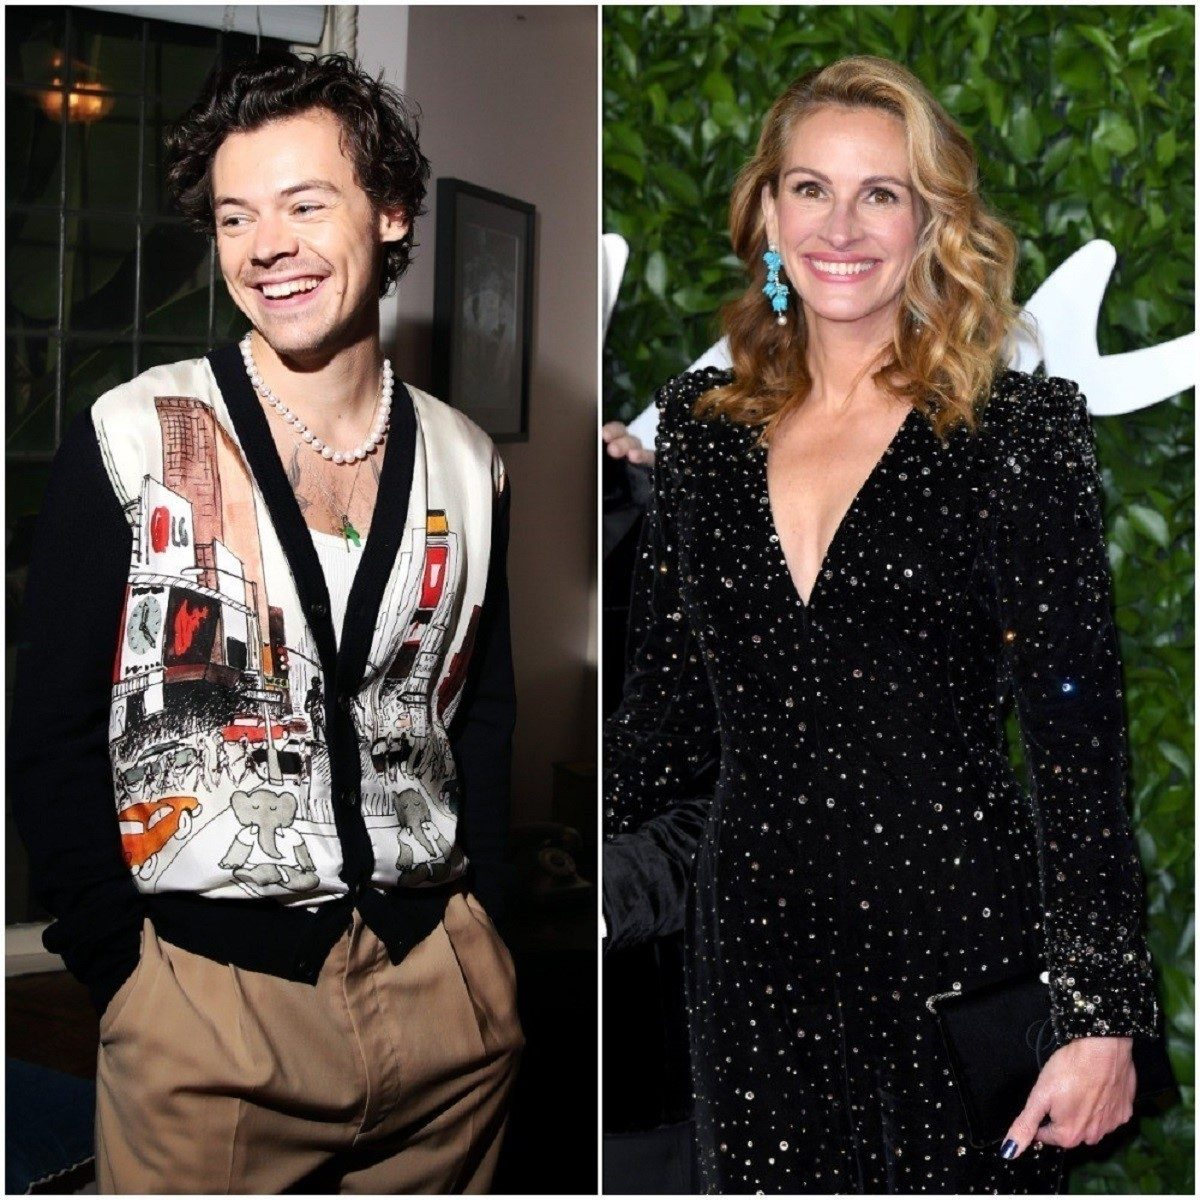 (L): Harry Styles laughing at a Spotify listening session, (R): Julia Roberts smiling in a black sparkling gown at The Fashion Awards